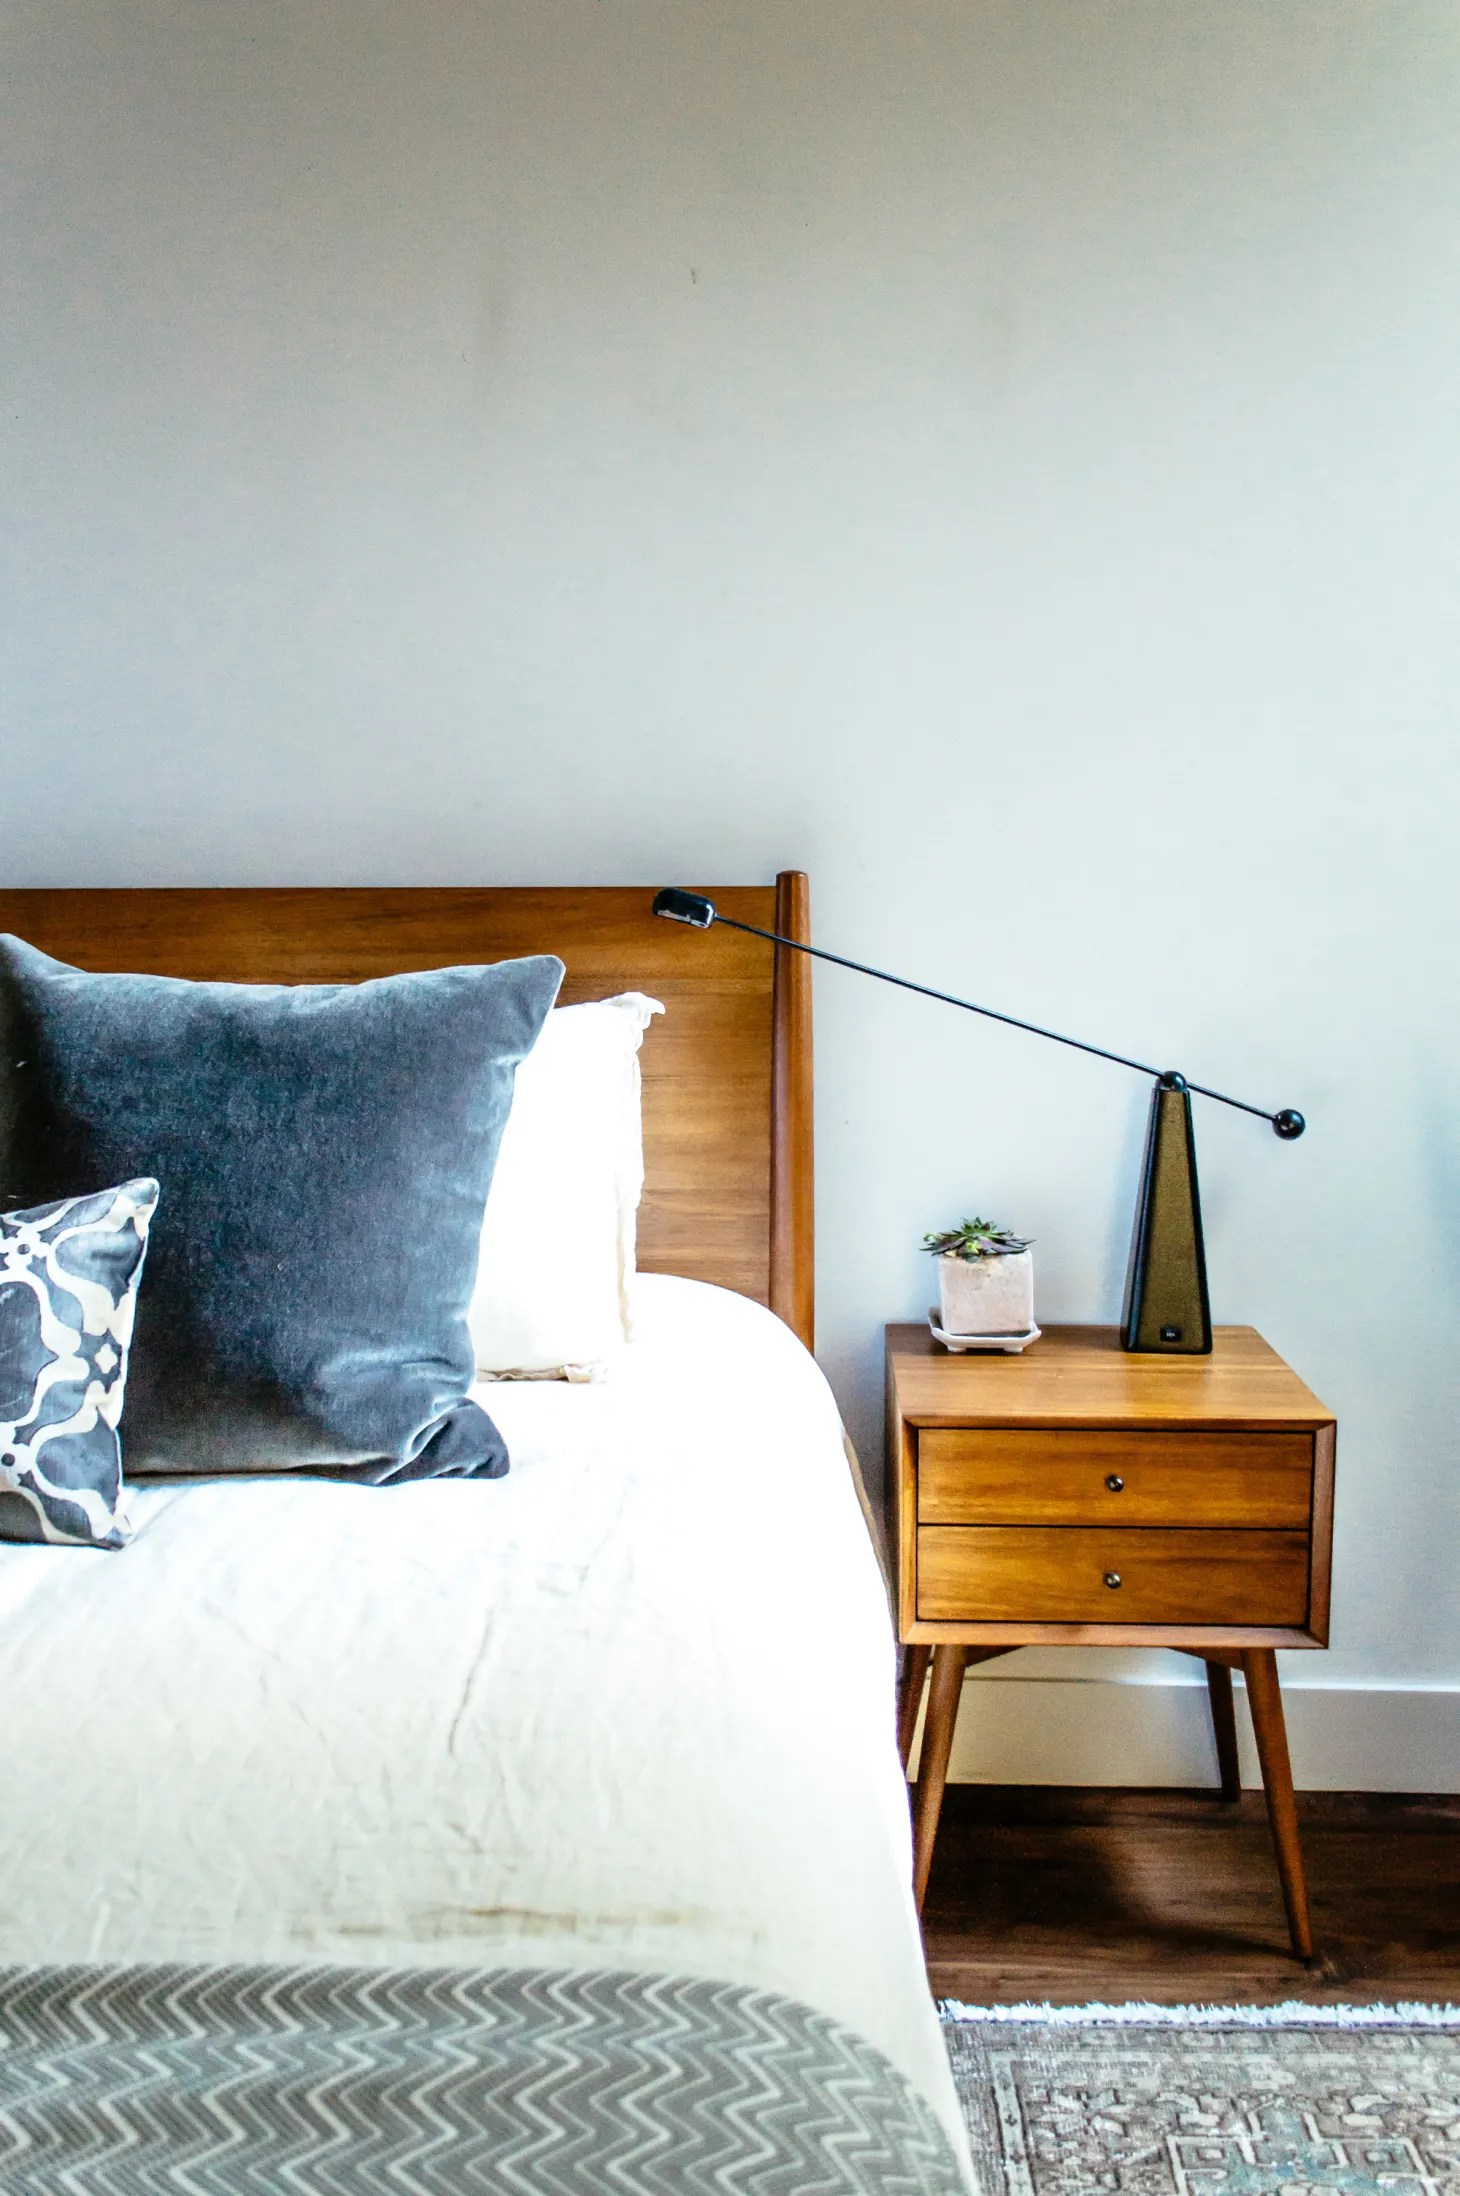 Common Bedroom Design Mistakes To Avoid Apartment Therapy